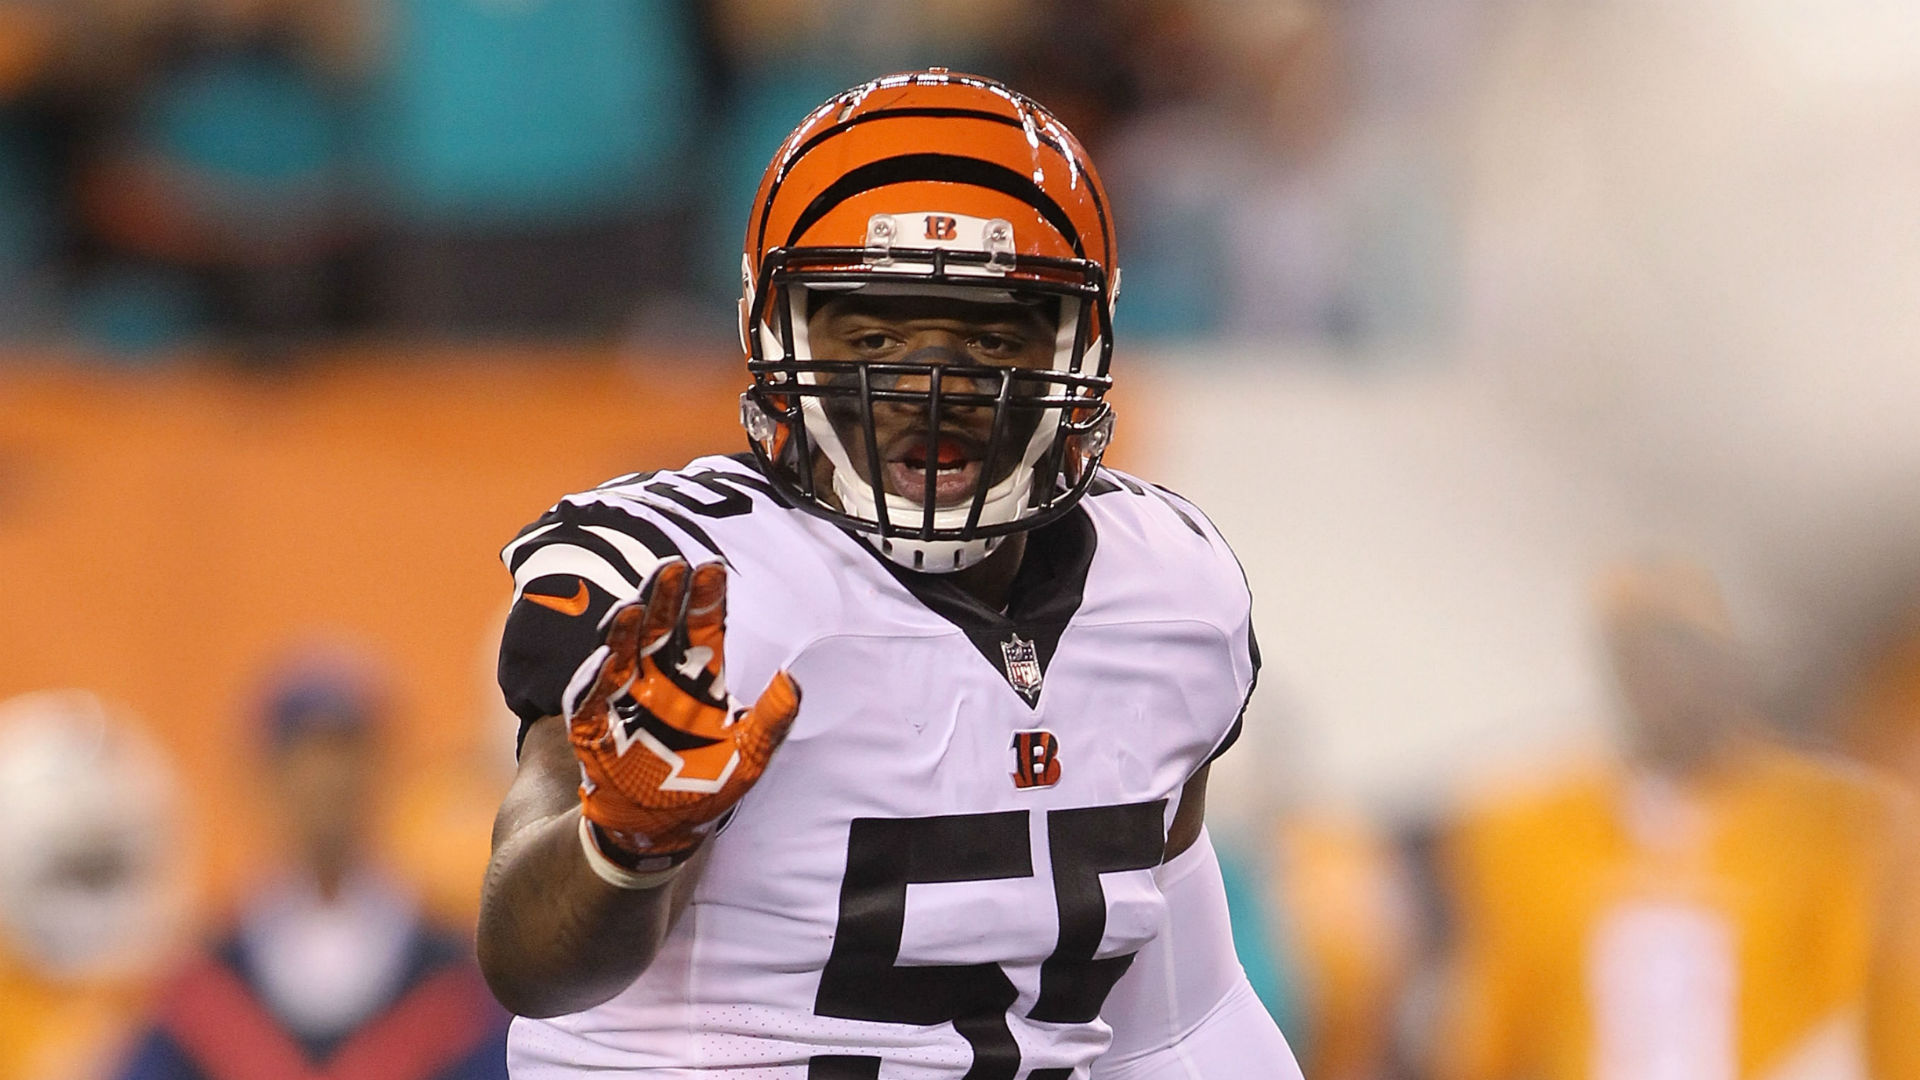 vontaze burfict jersey color rush